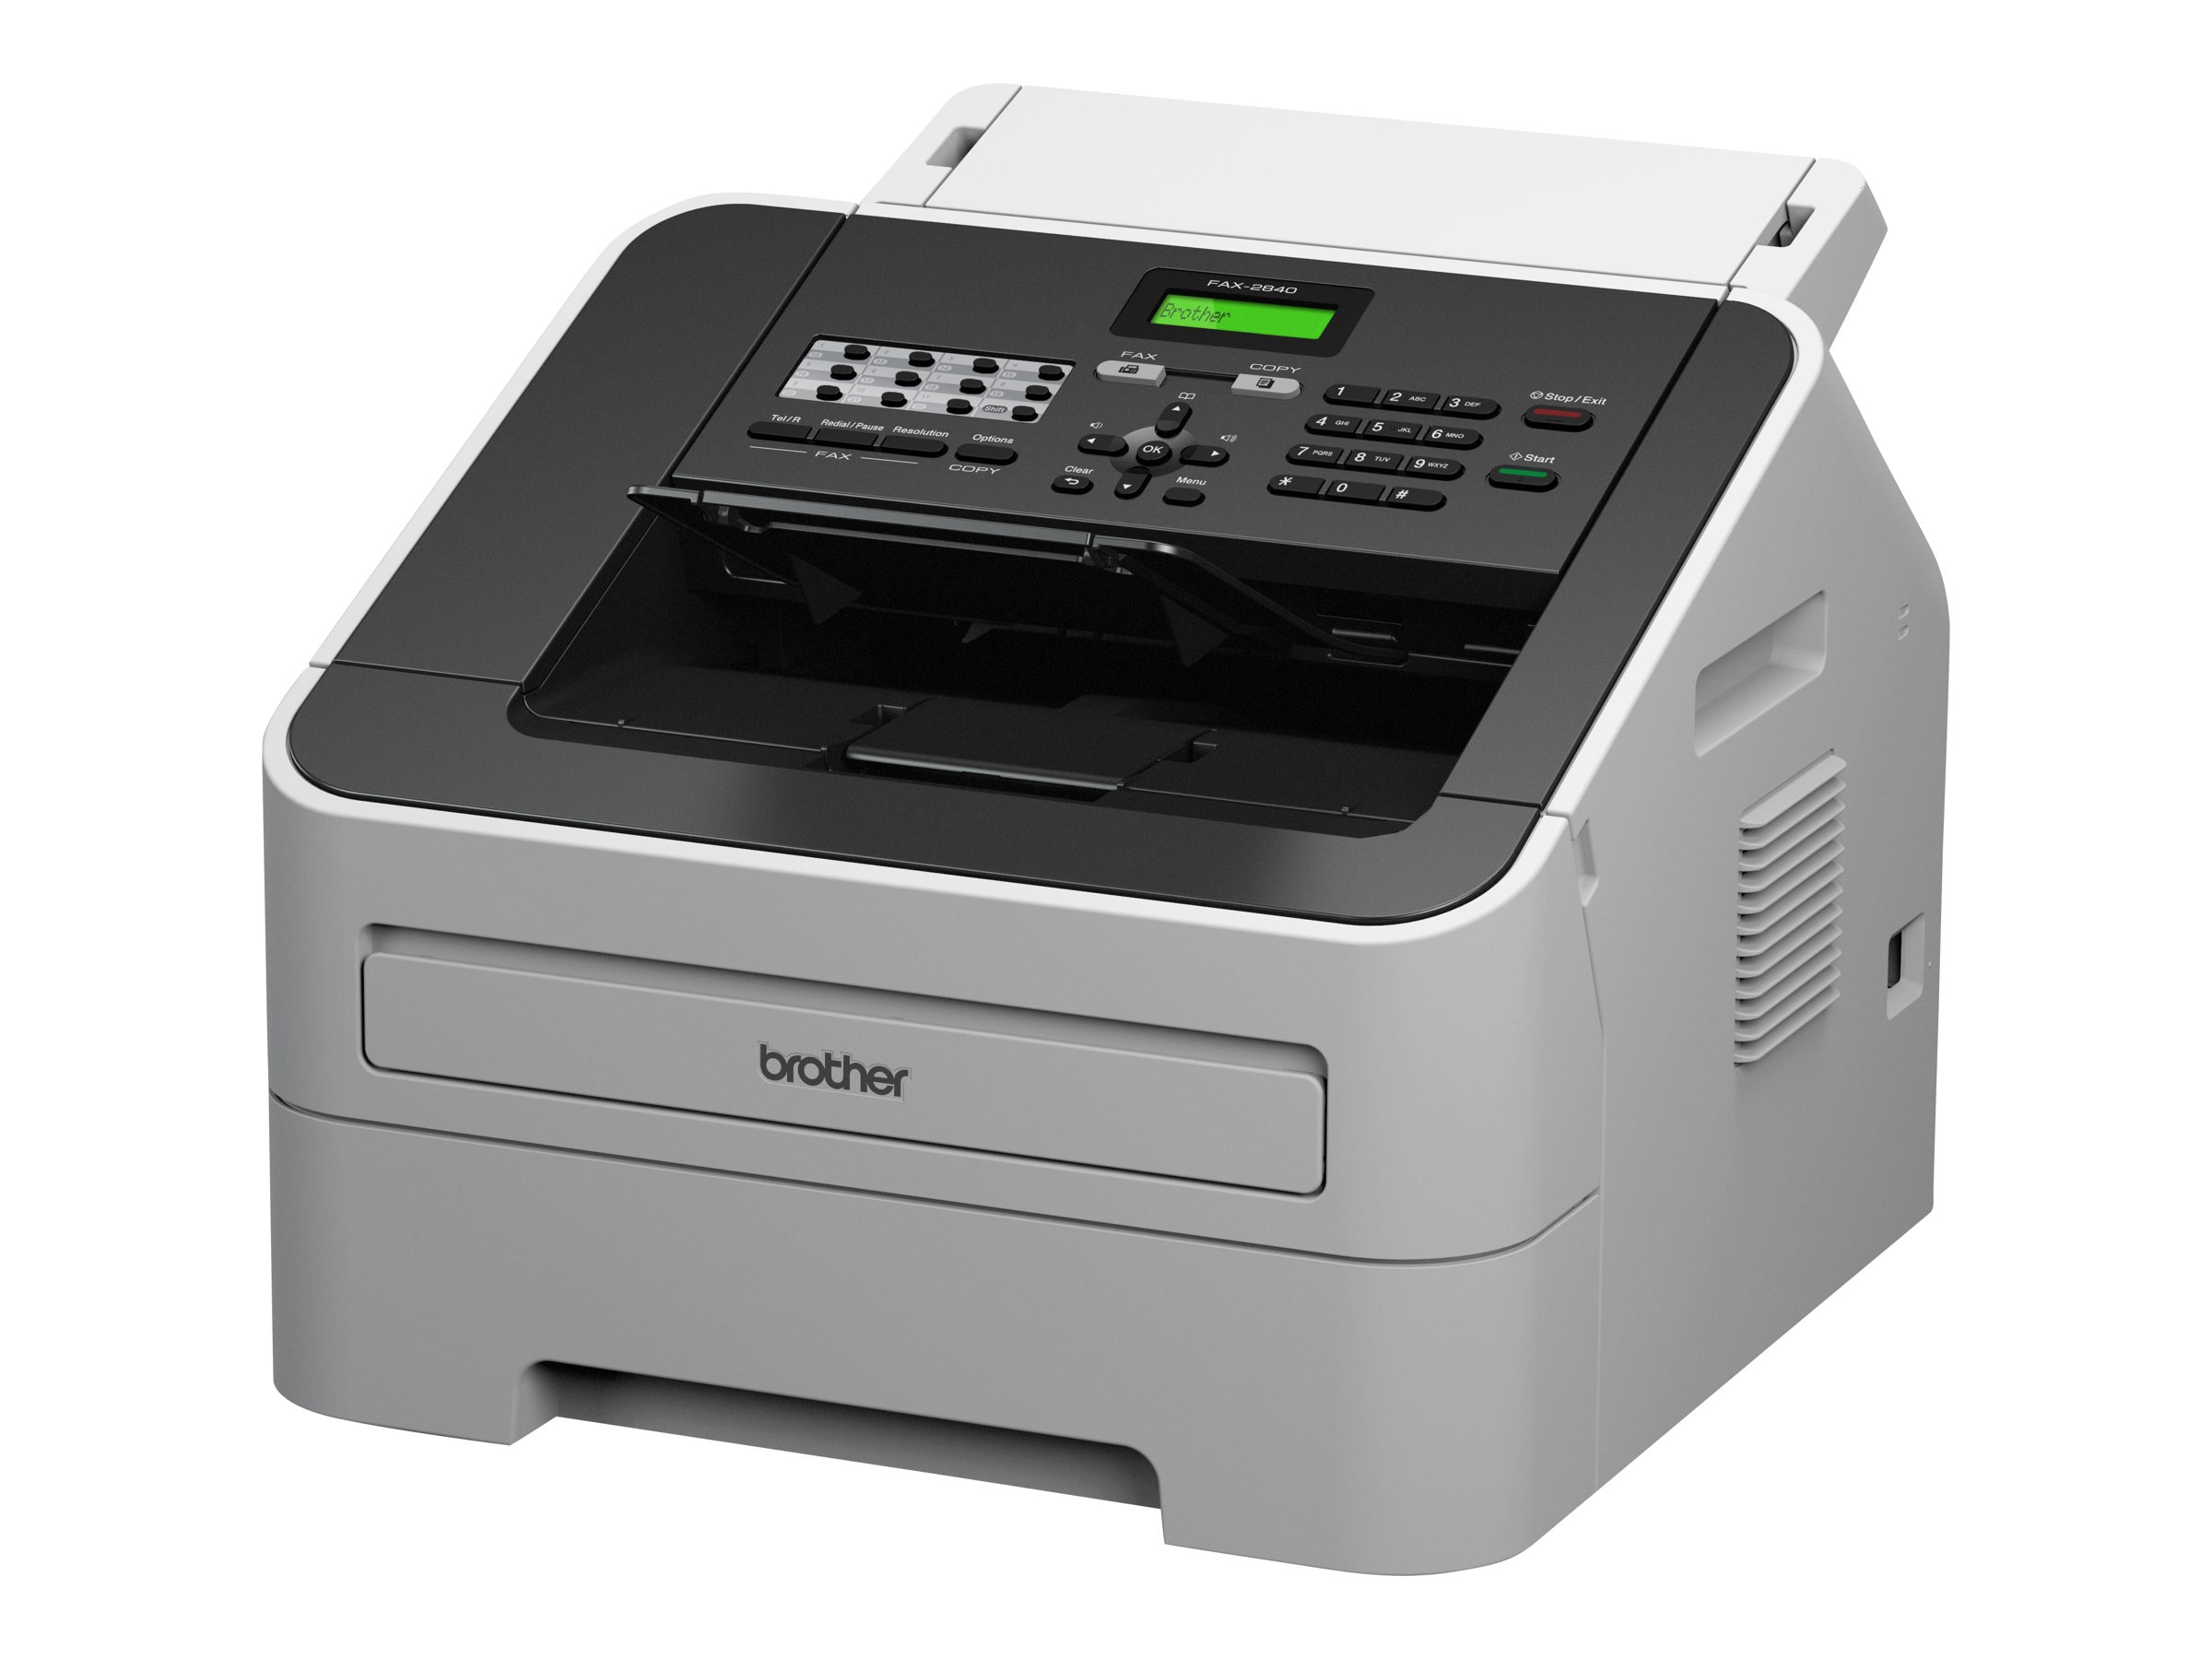 Brother IntelliFax-2840 High-Speed Laser Fax, FAX-2840, 15483594, Fax Machines